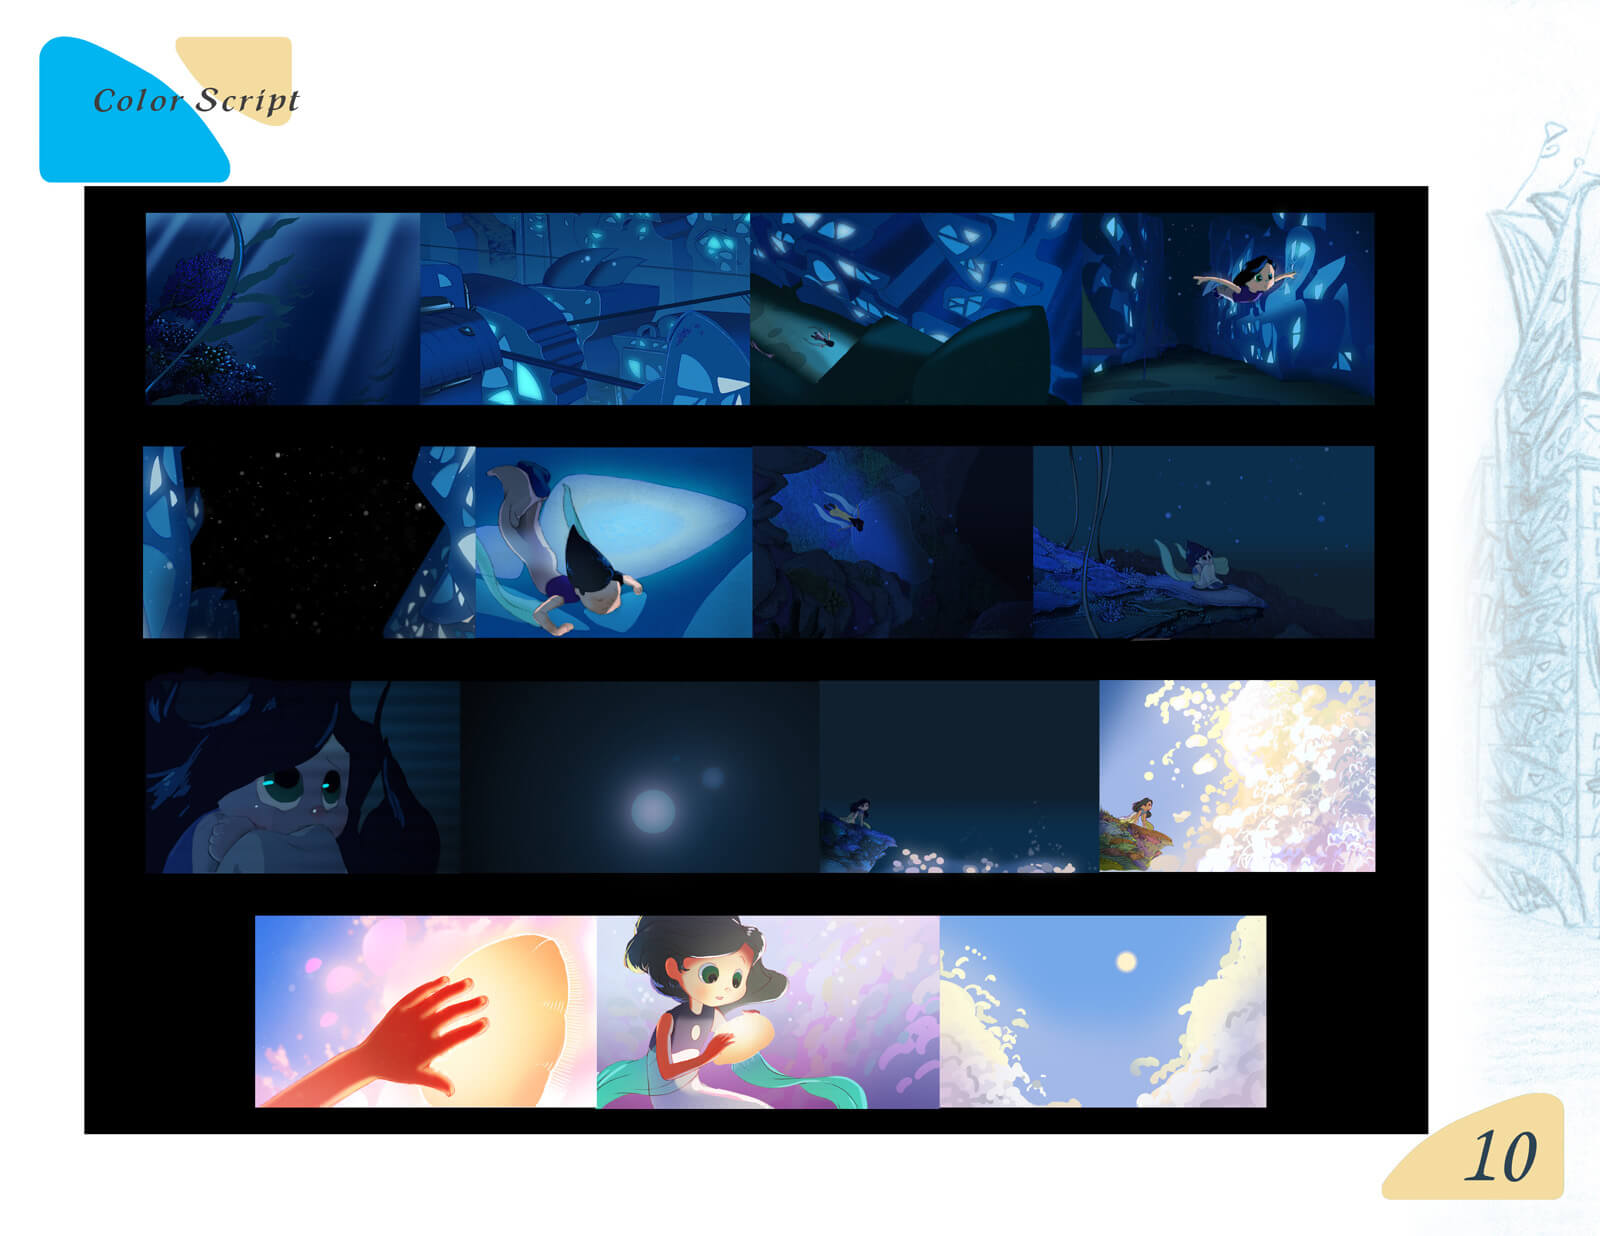 Color storyboard depicting the story of the film Beneath the Night Sea, from beginning to end